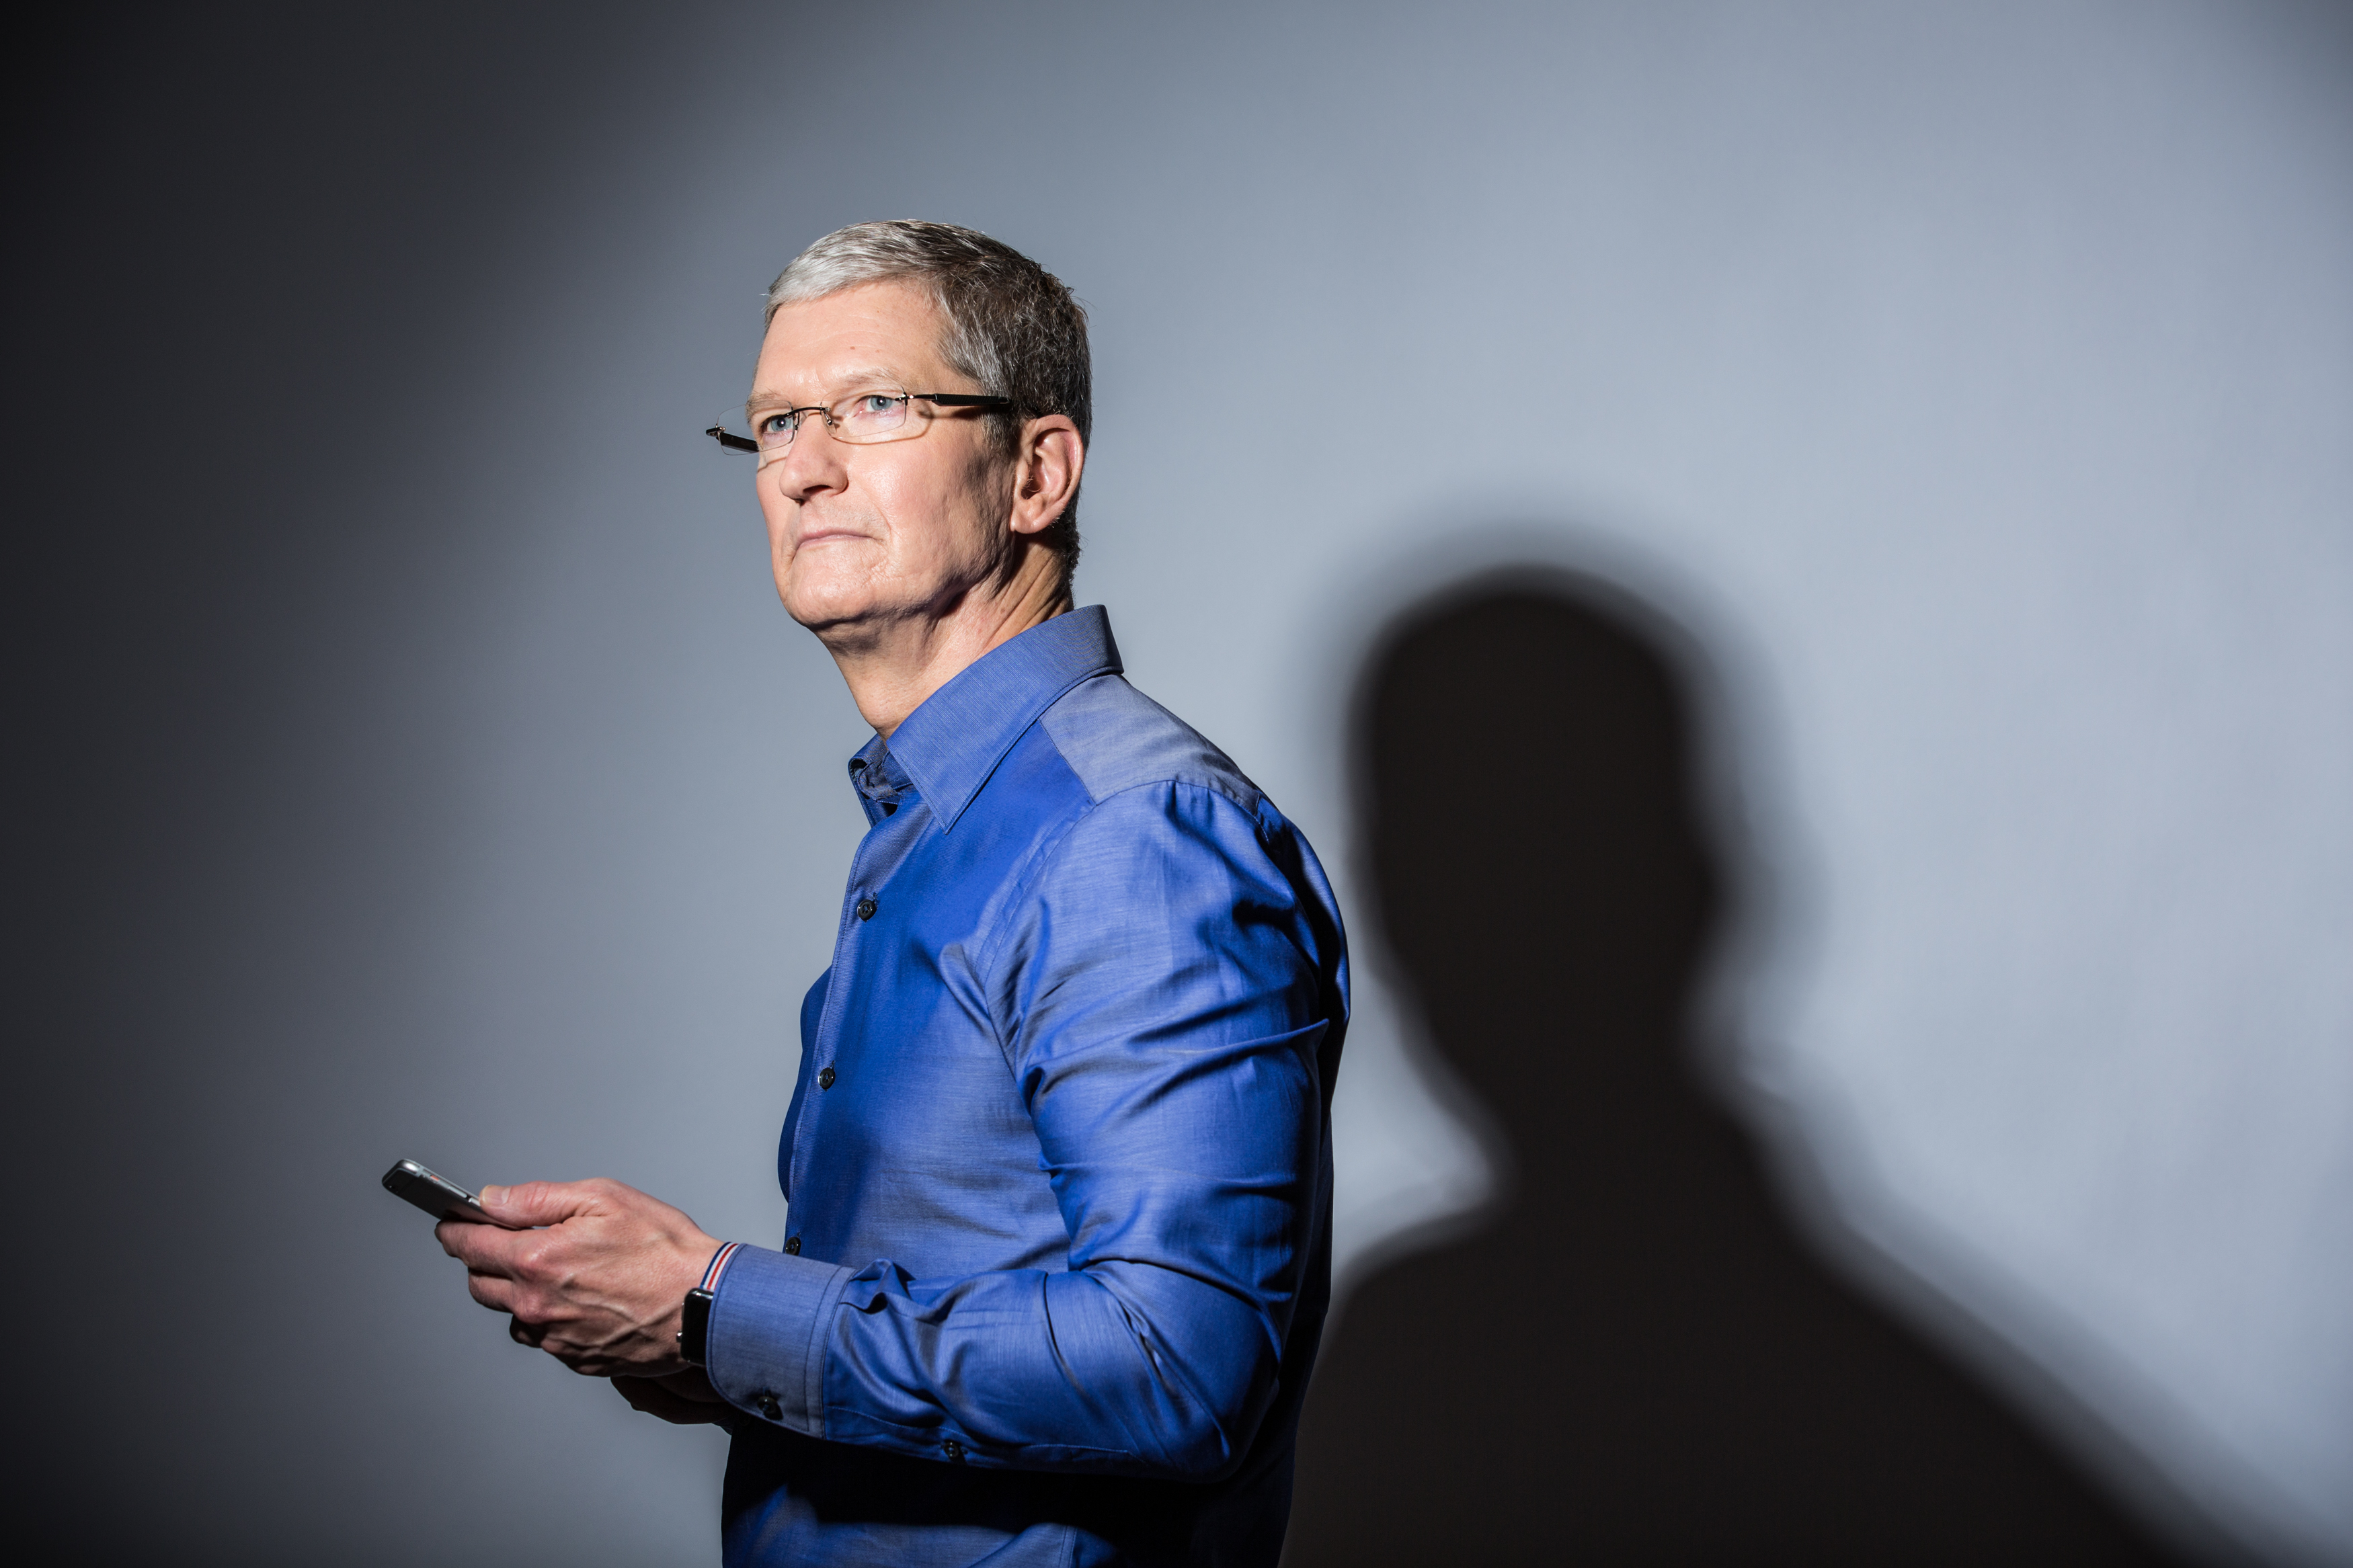 Apple CEO Tim Cook poses for a portrait at Apple's global headquarters in Cupertino, California on July 28, 2016.